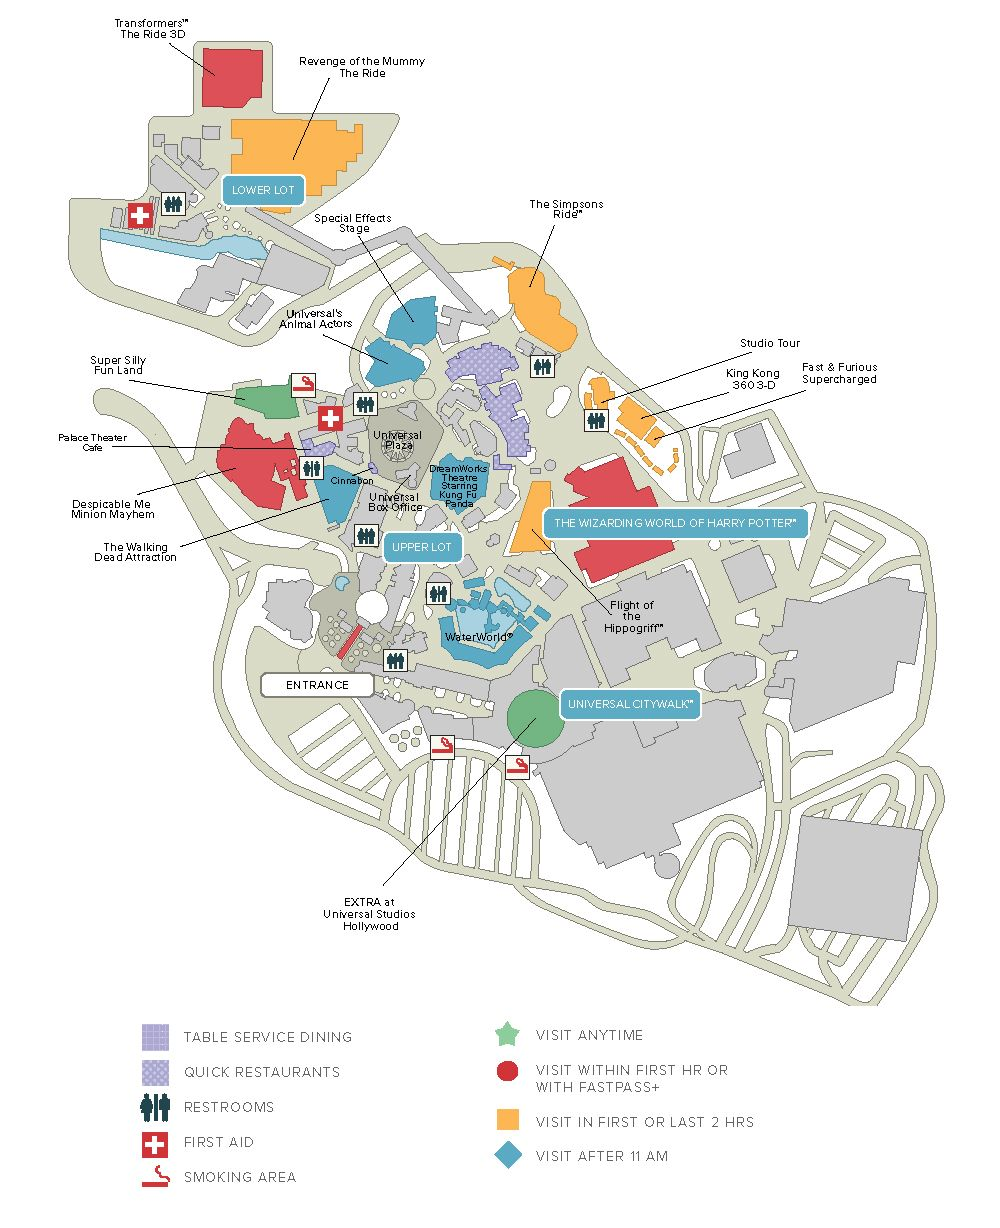 Universal Studios Map 2019 : universal, studios, Universal, Studios, Hollywood, Discount, Tickets,, Crowds,, Videos,, Hours, Studios,, Hollywood,